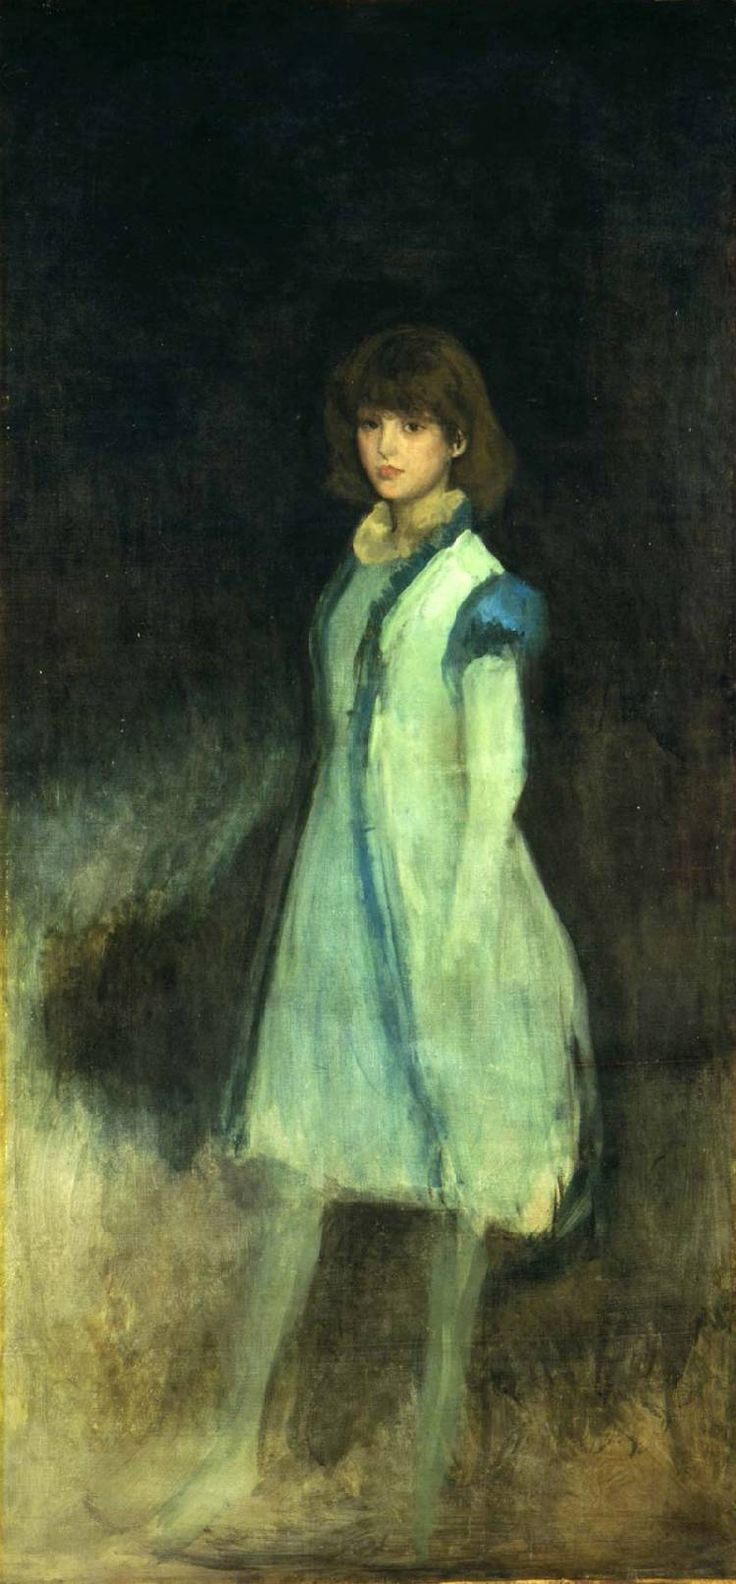 The Blue Girl: Portrait of Connie Gilchrist / James McNeill Whistler, 1879